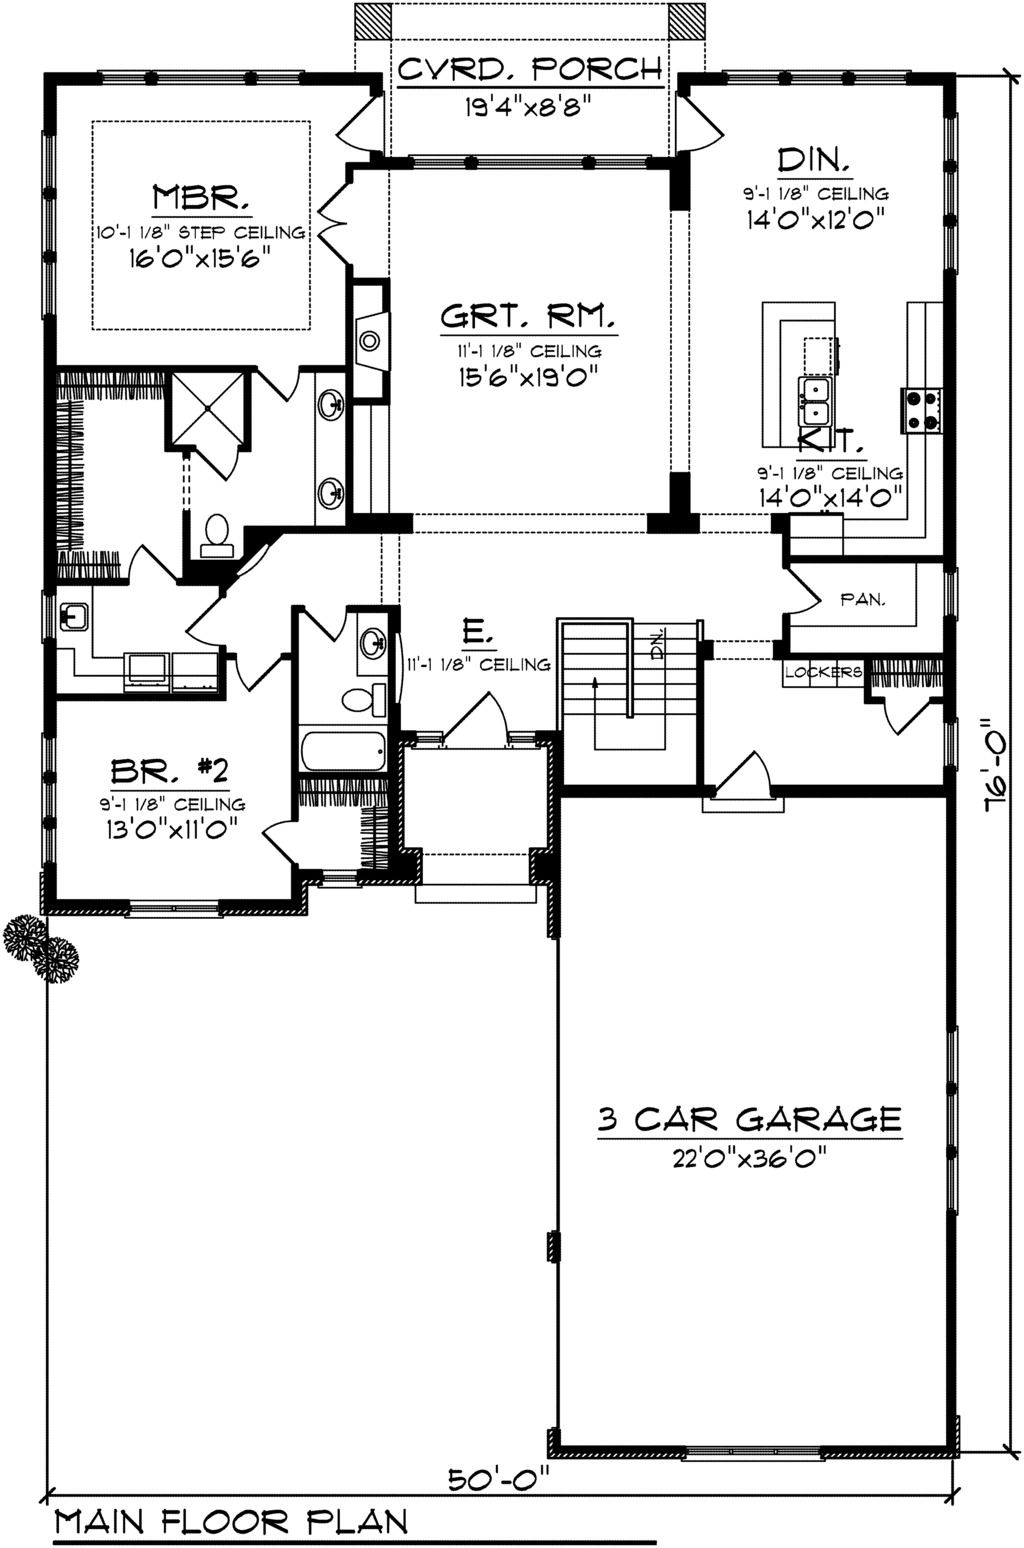 Ranch Style House Plan - 122 Beds 12.12 Baths 12993 Sq/Ft Plan #12-12096